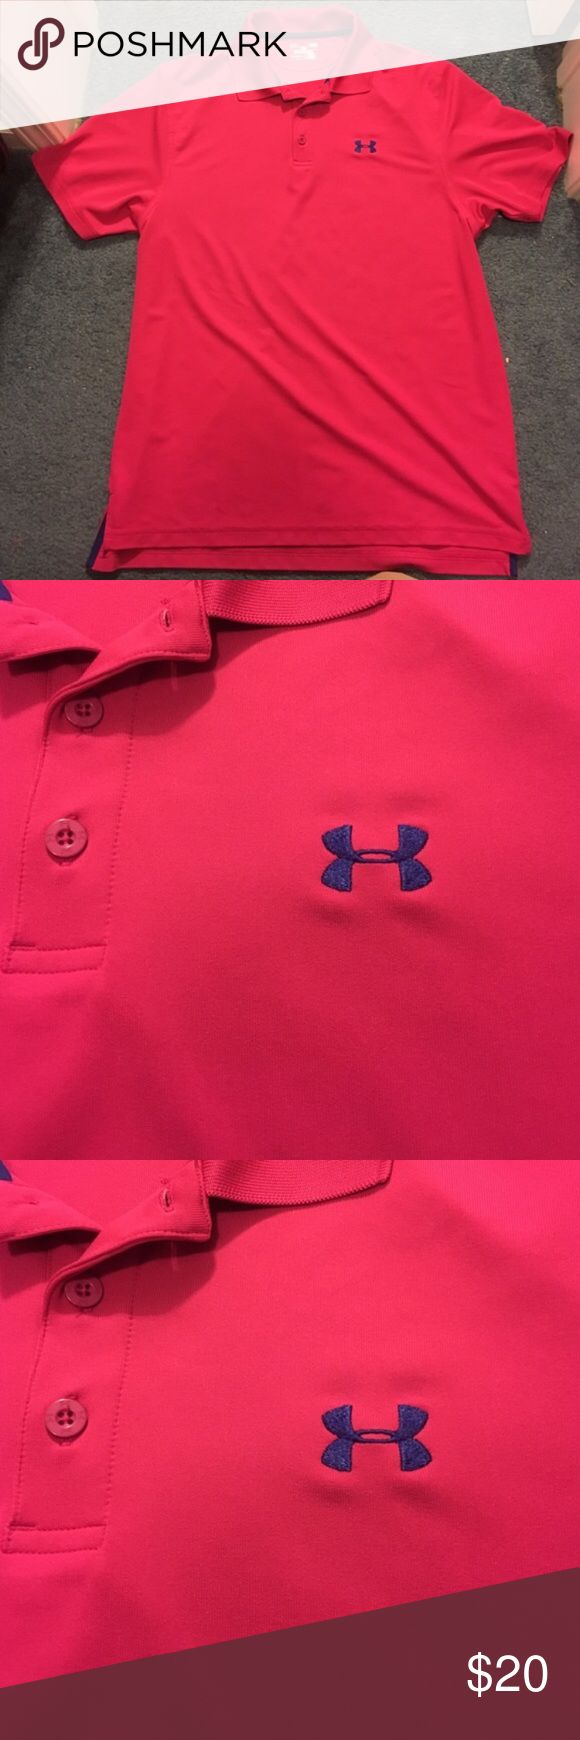 Under Armor Polo Only worn a few times Under Armor Polo Under Armour Shirts Polos